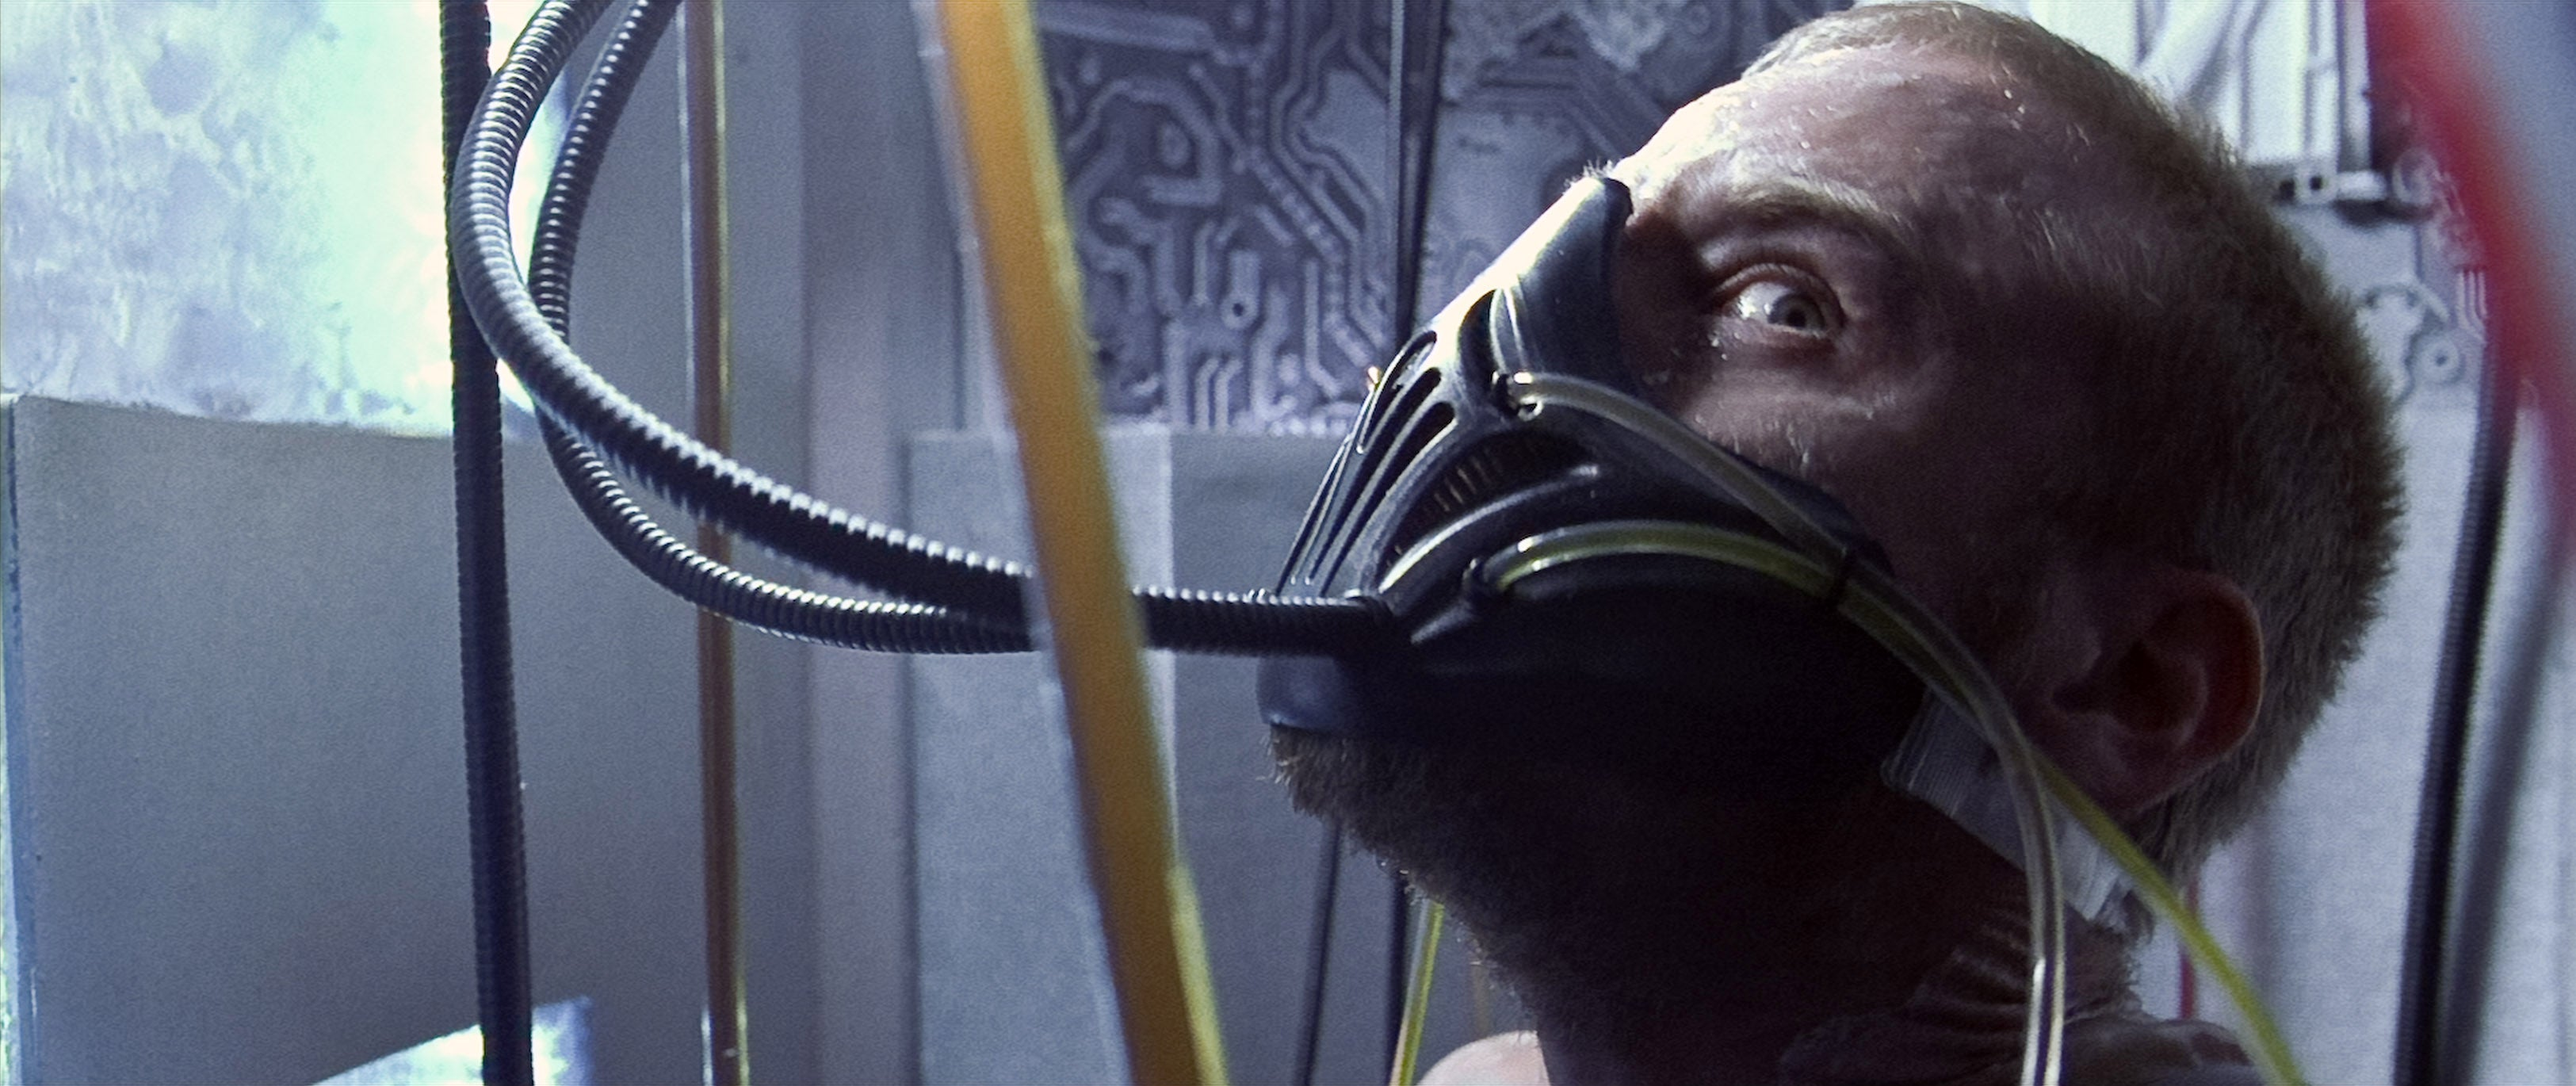 Pandorum's New Space Madness Trailer Unleashes Orc-like Albino Army